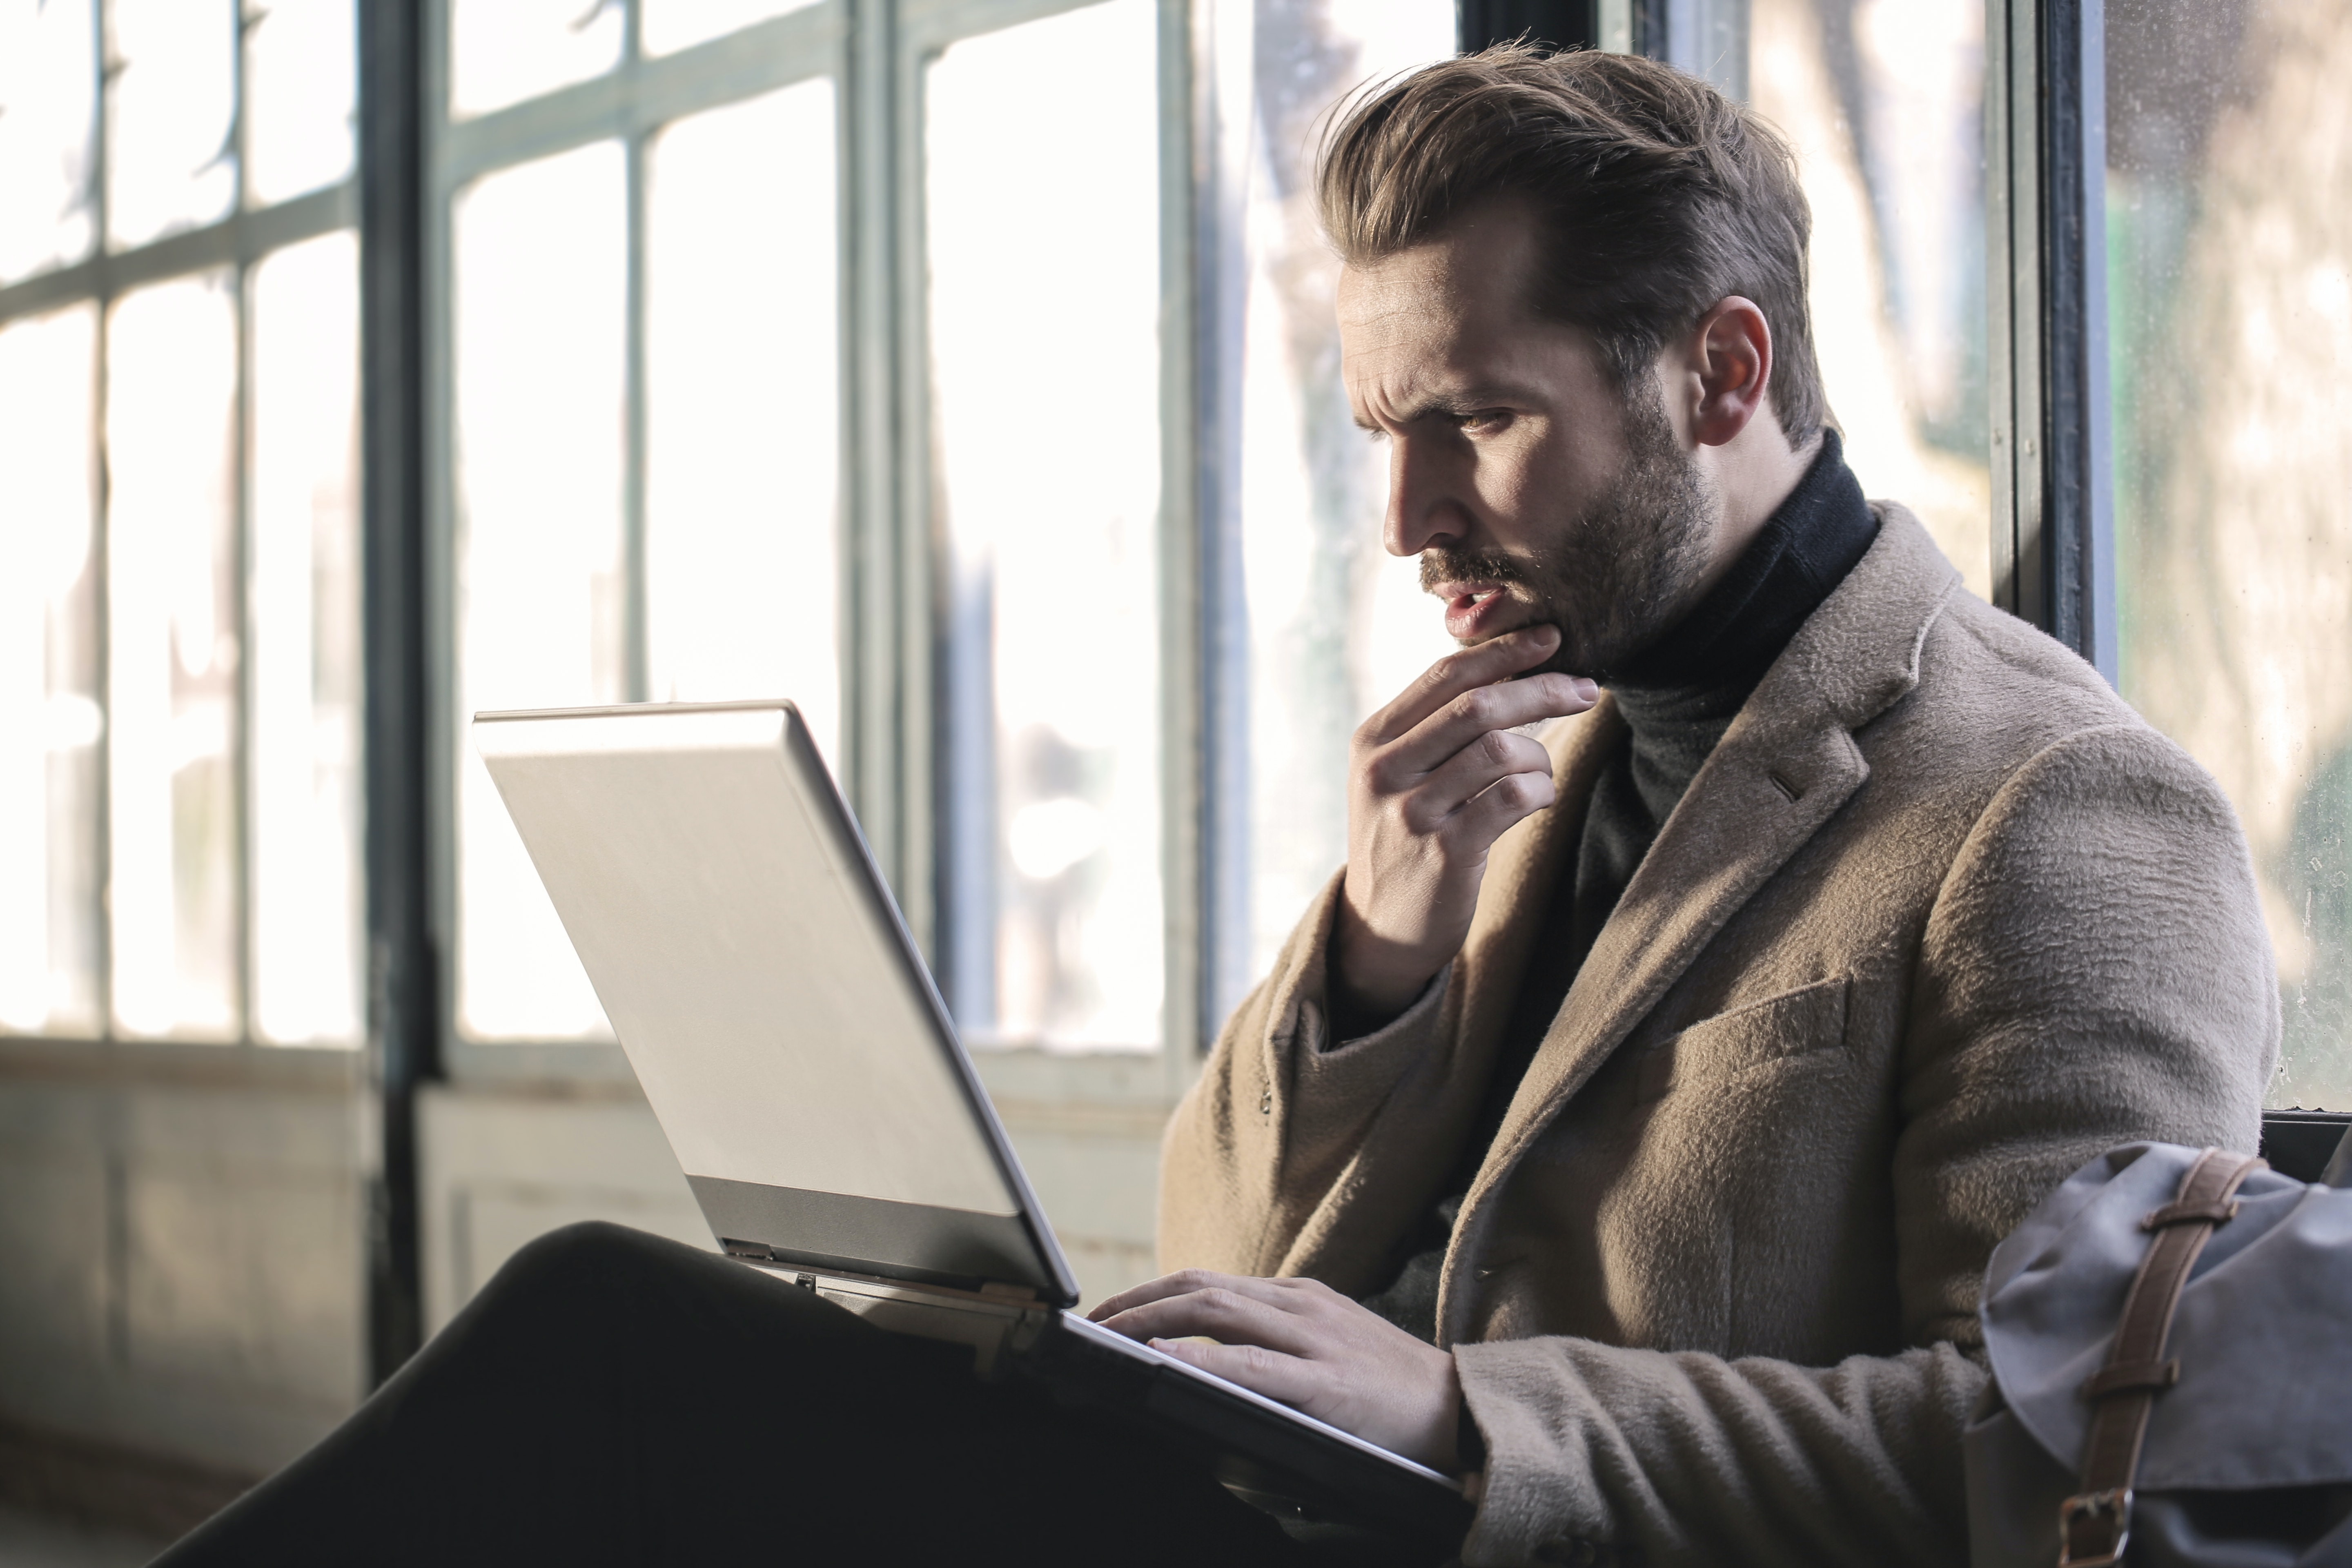 Detecting Bias and other Toxic Workplace Behavior using AI